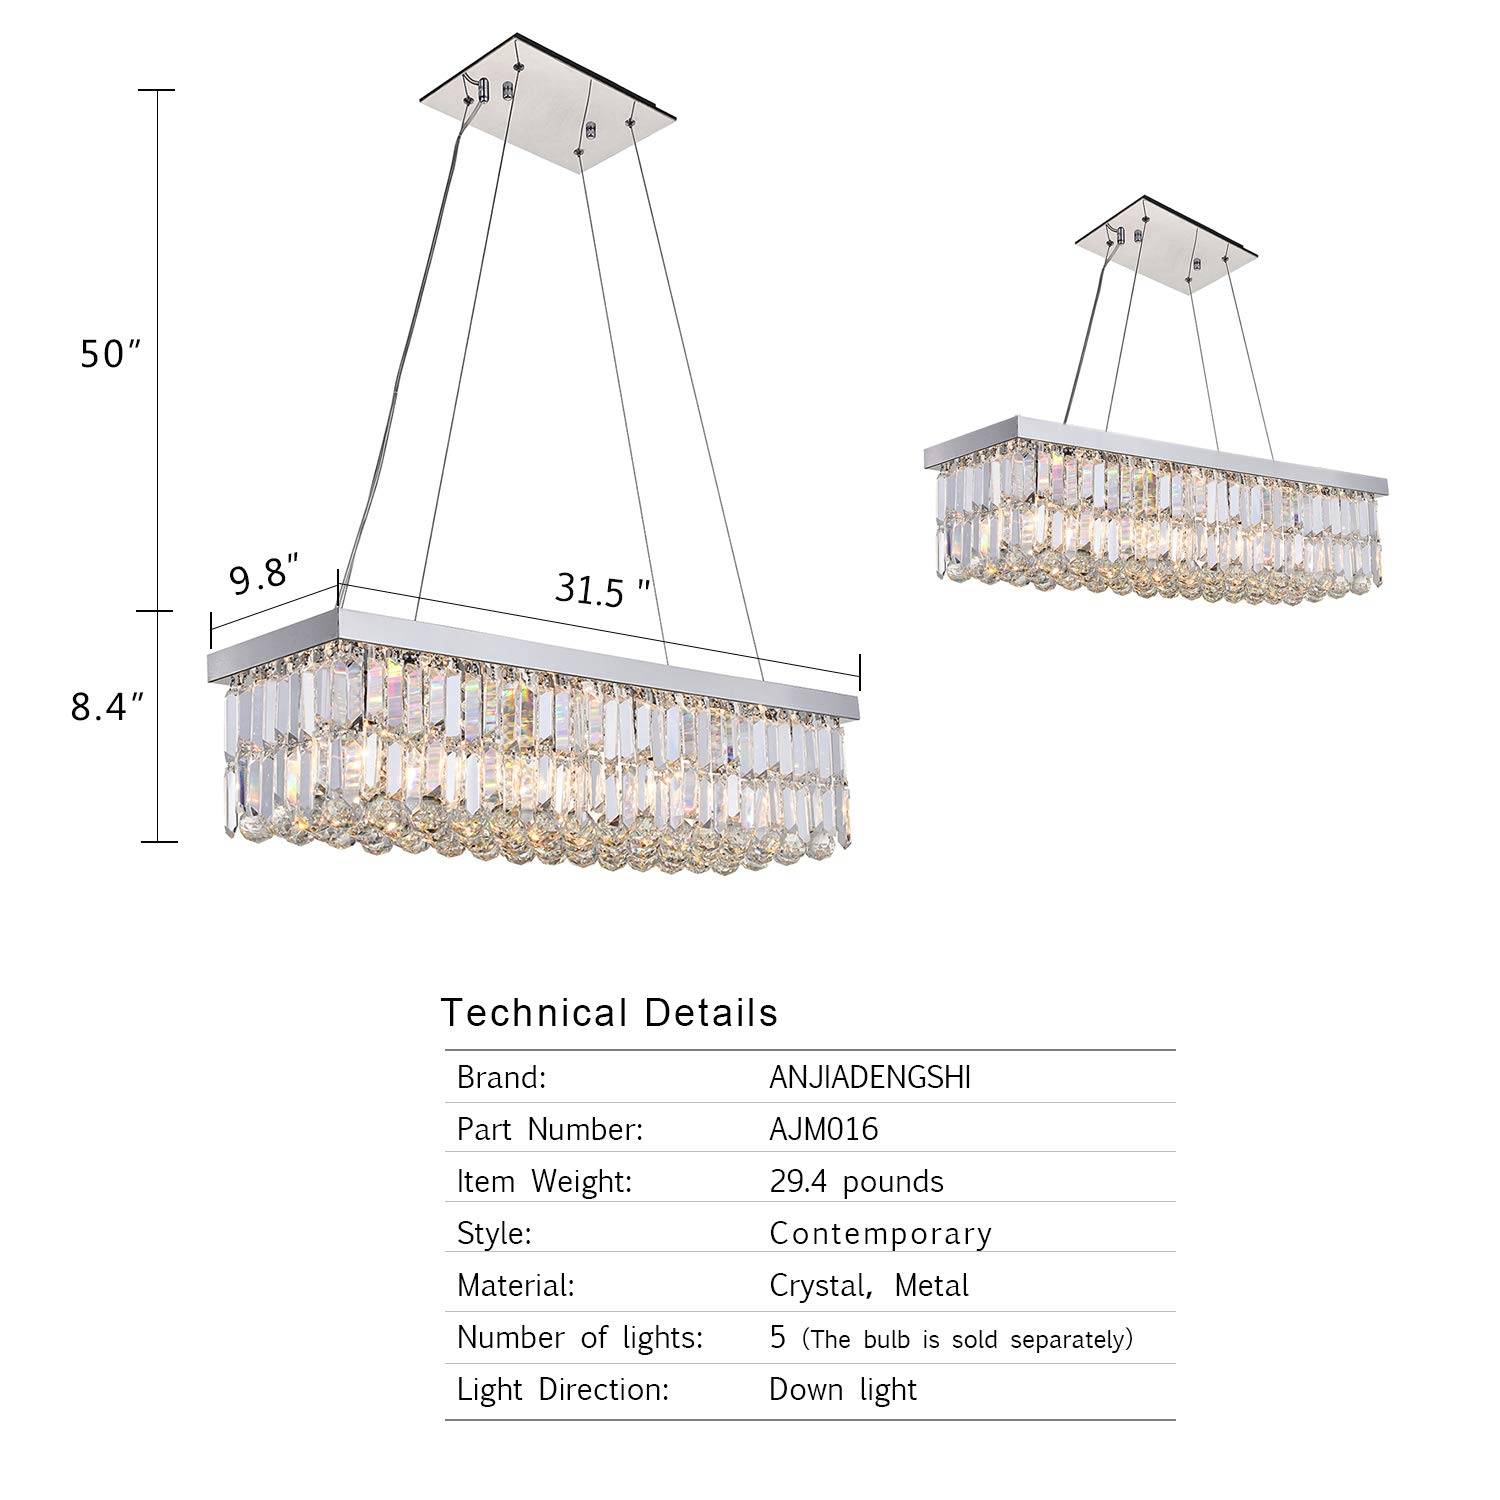 ANJIADENGSHI Modern Traditional Vintage Rectangular Crystal Chandelier Stainless Steel 5 E12 Bulbs with Adjustable Hanging Height for Dining Living Room Foyer Office Chandelier, Chrome